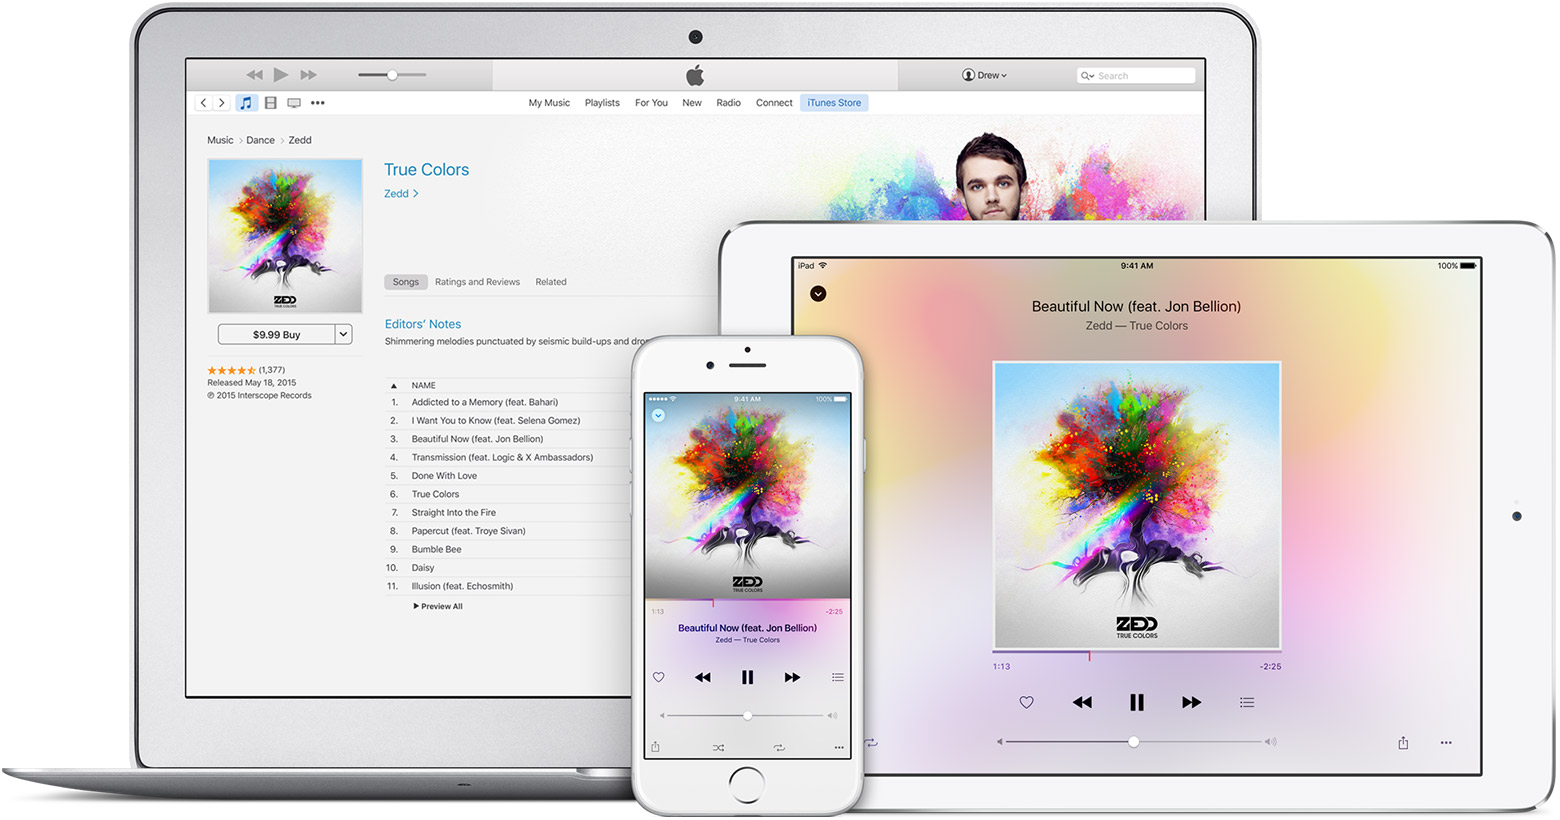 Apple Music On iPhone, iPad and Macbook Air